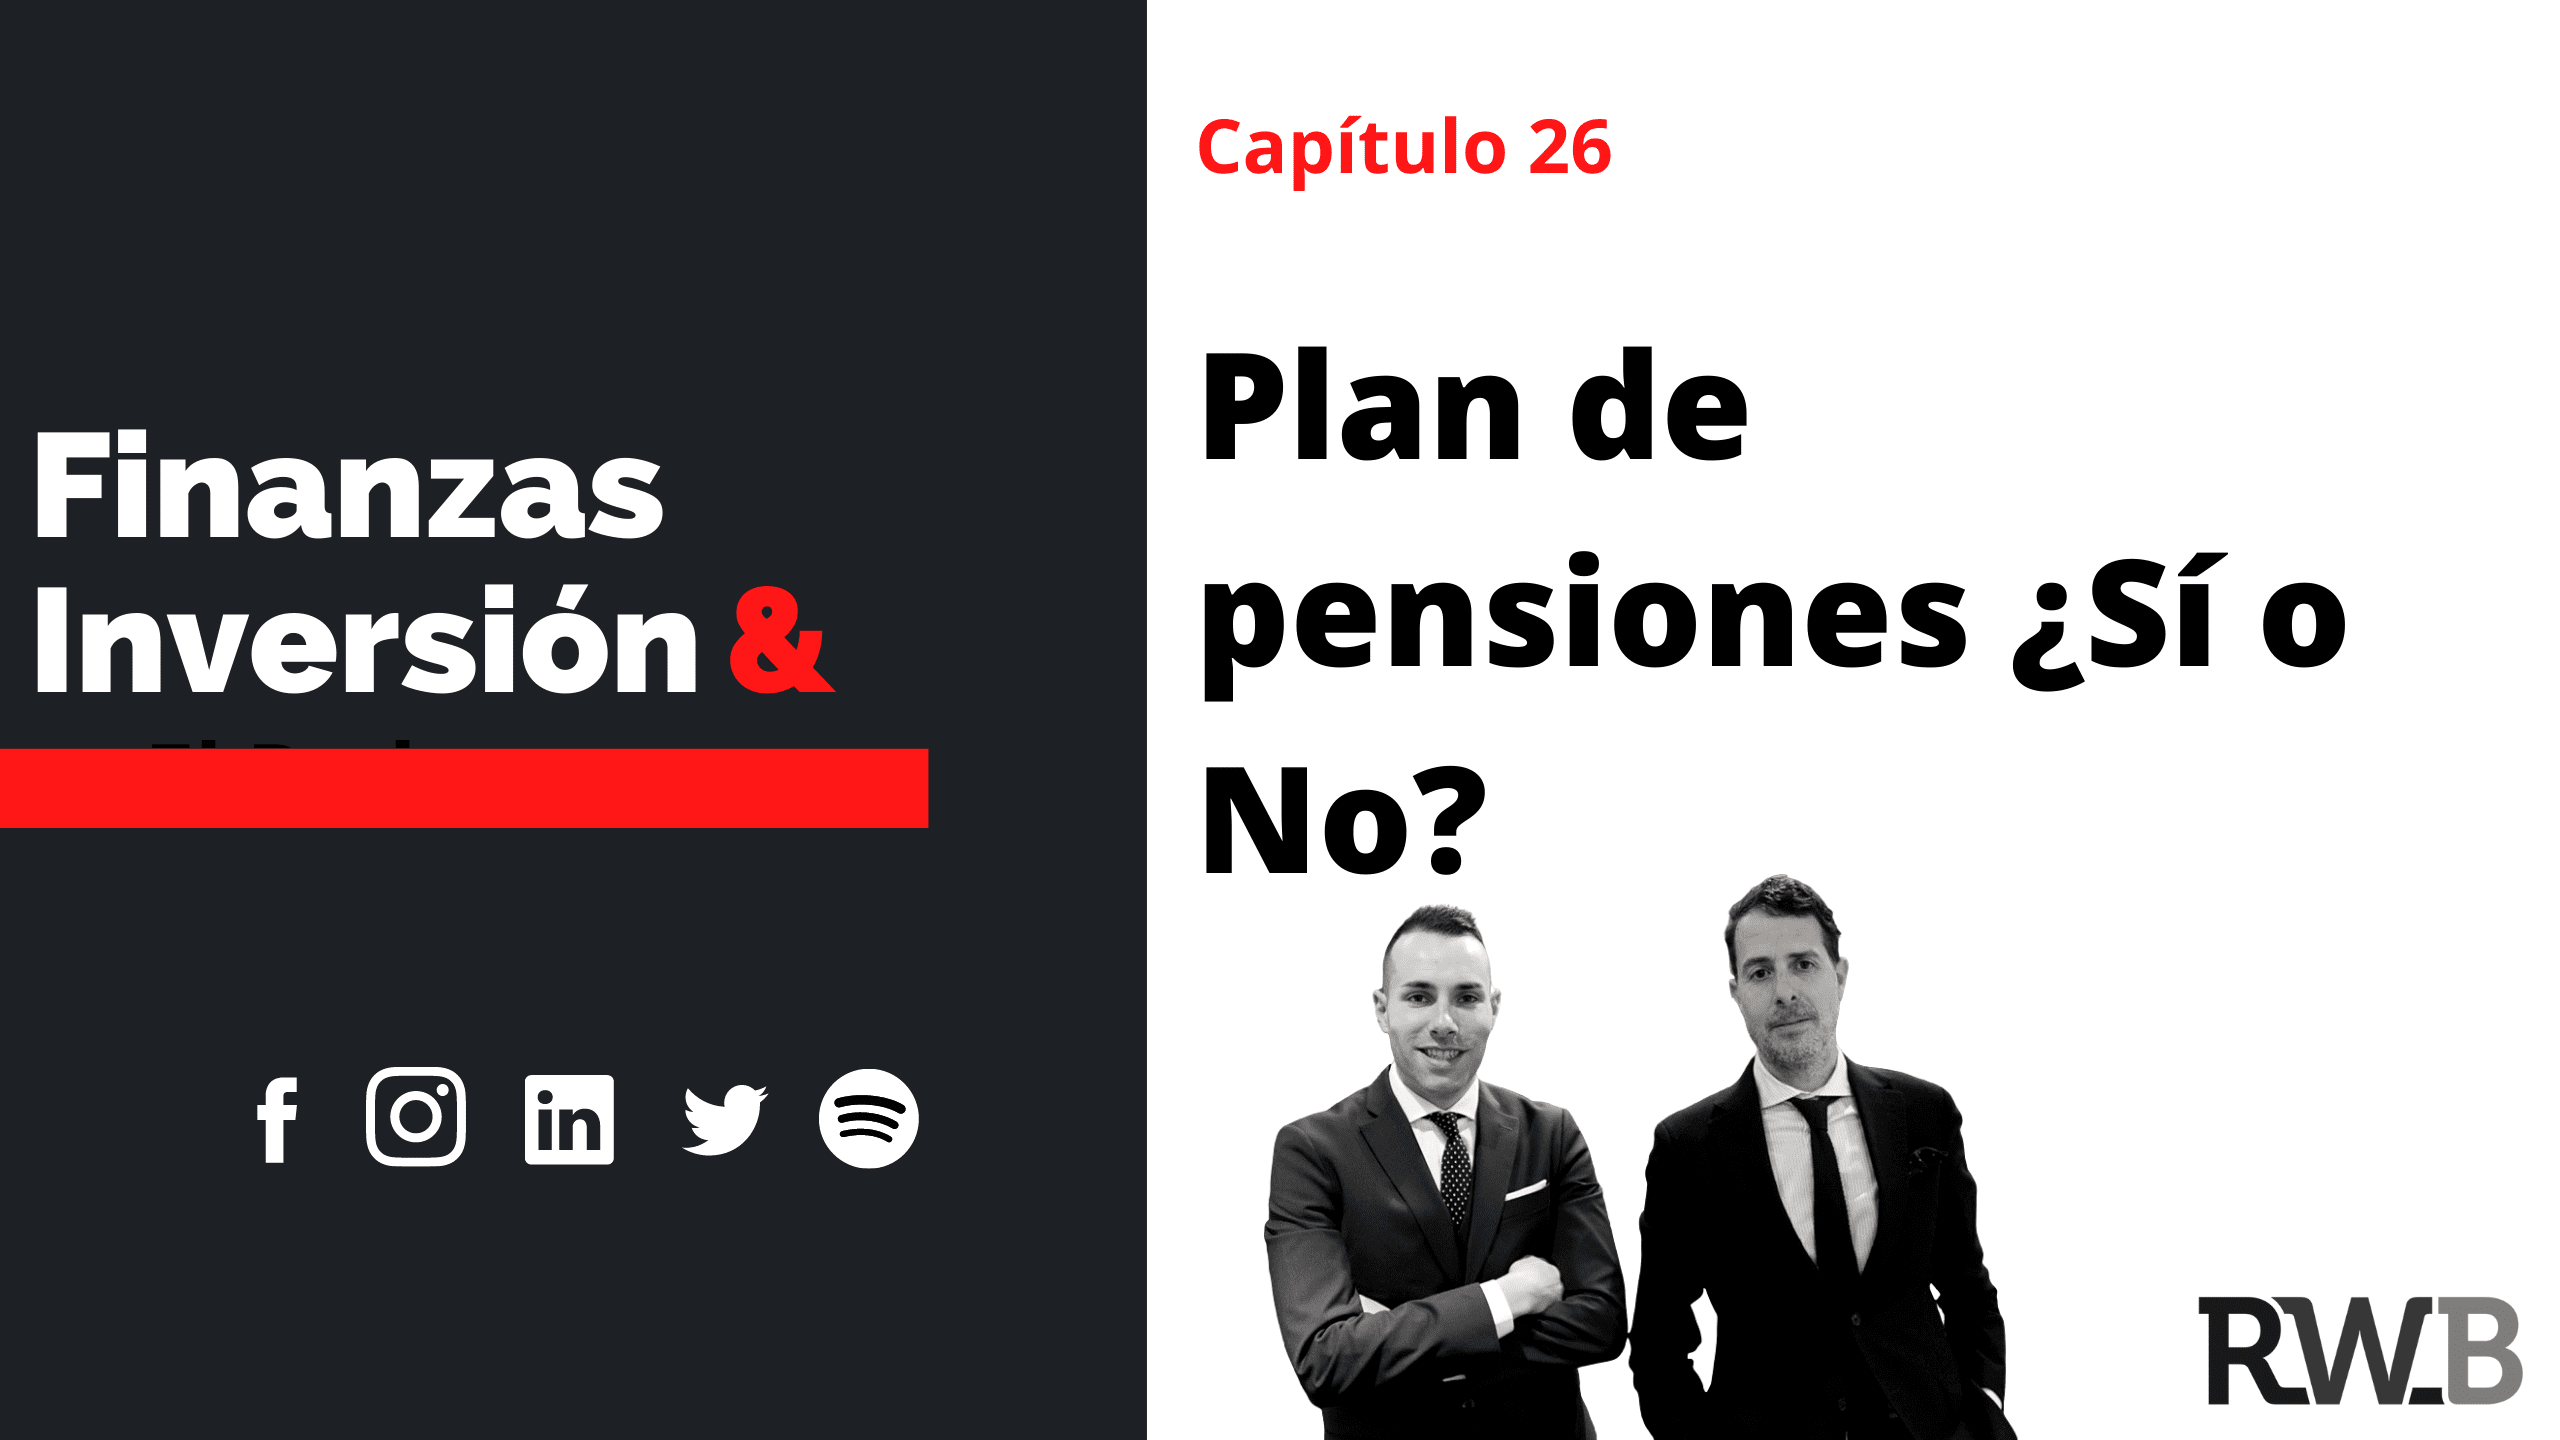 Plan de pensiones ¿Sí o No?